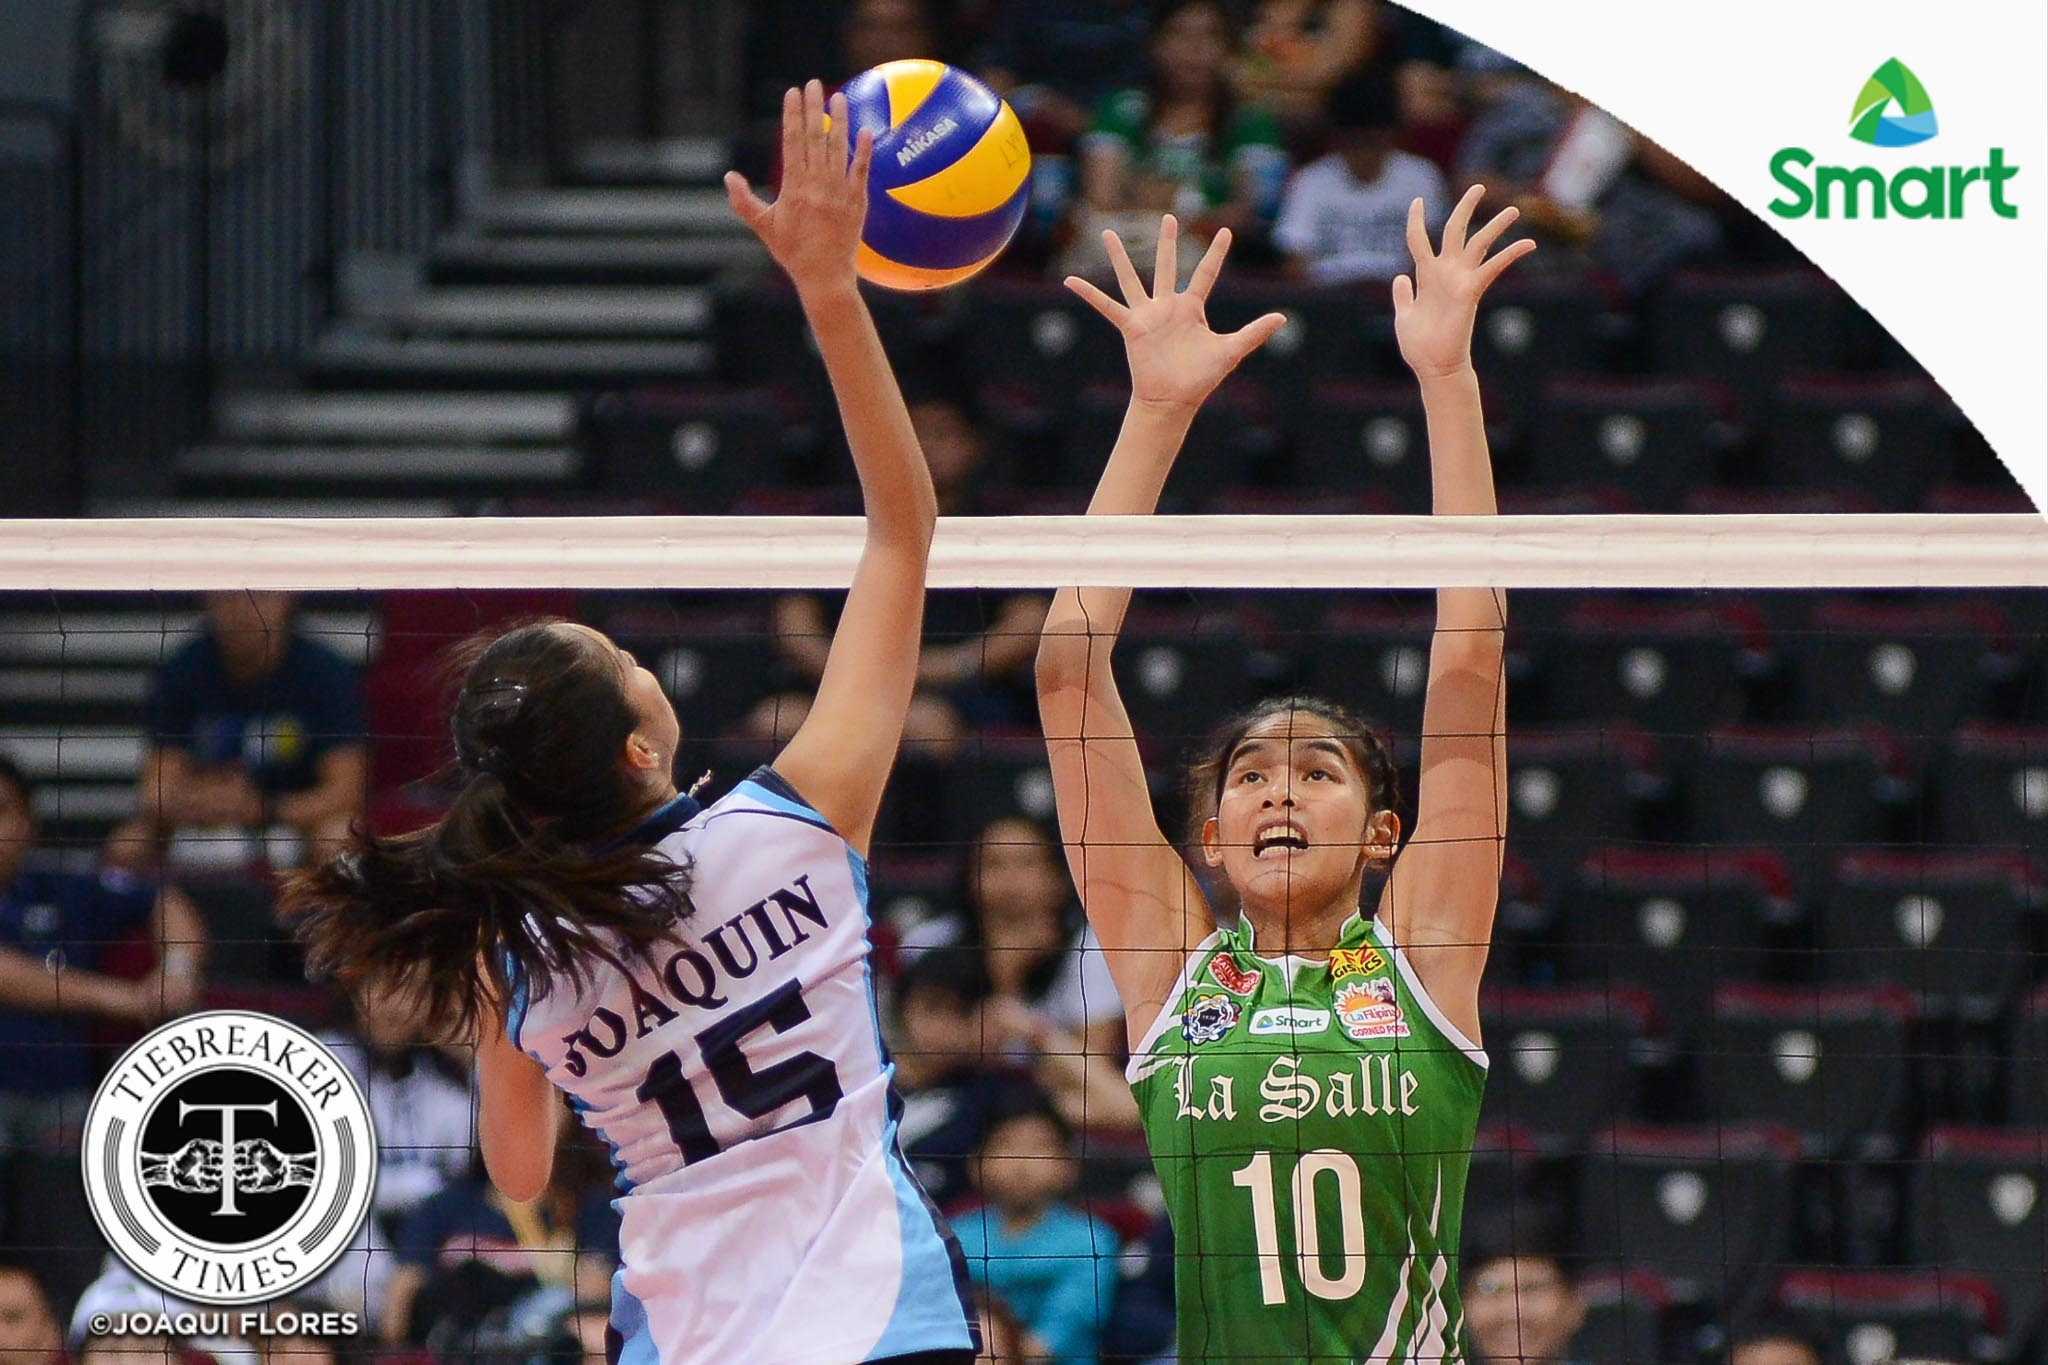 Philippine Sports News - Tiebreaker Times Lady Spikers ground Lady Falcons, near second-round sweep AdU DLSU News UAAP Volleyball  UAAP Season 79 Women's Volleyball UAAP Season 79 Ramil De Jesus Majoy Baron Kim Fajardo Jema Galanza DLSU Women's Volleyball Dawn Macandili Airess Padda Adamson Women's Volleyball